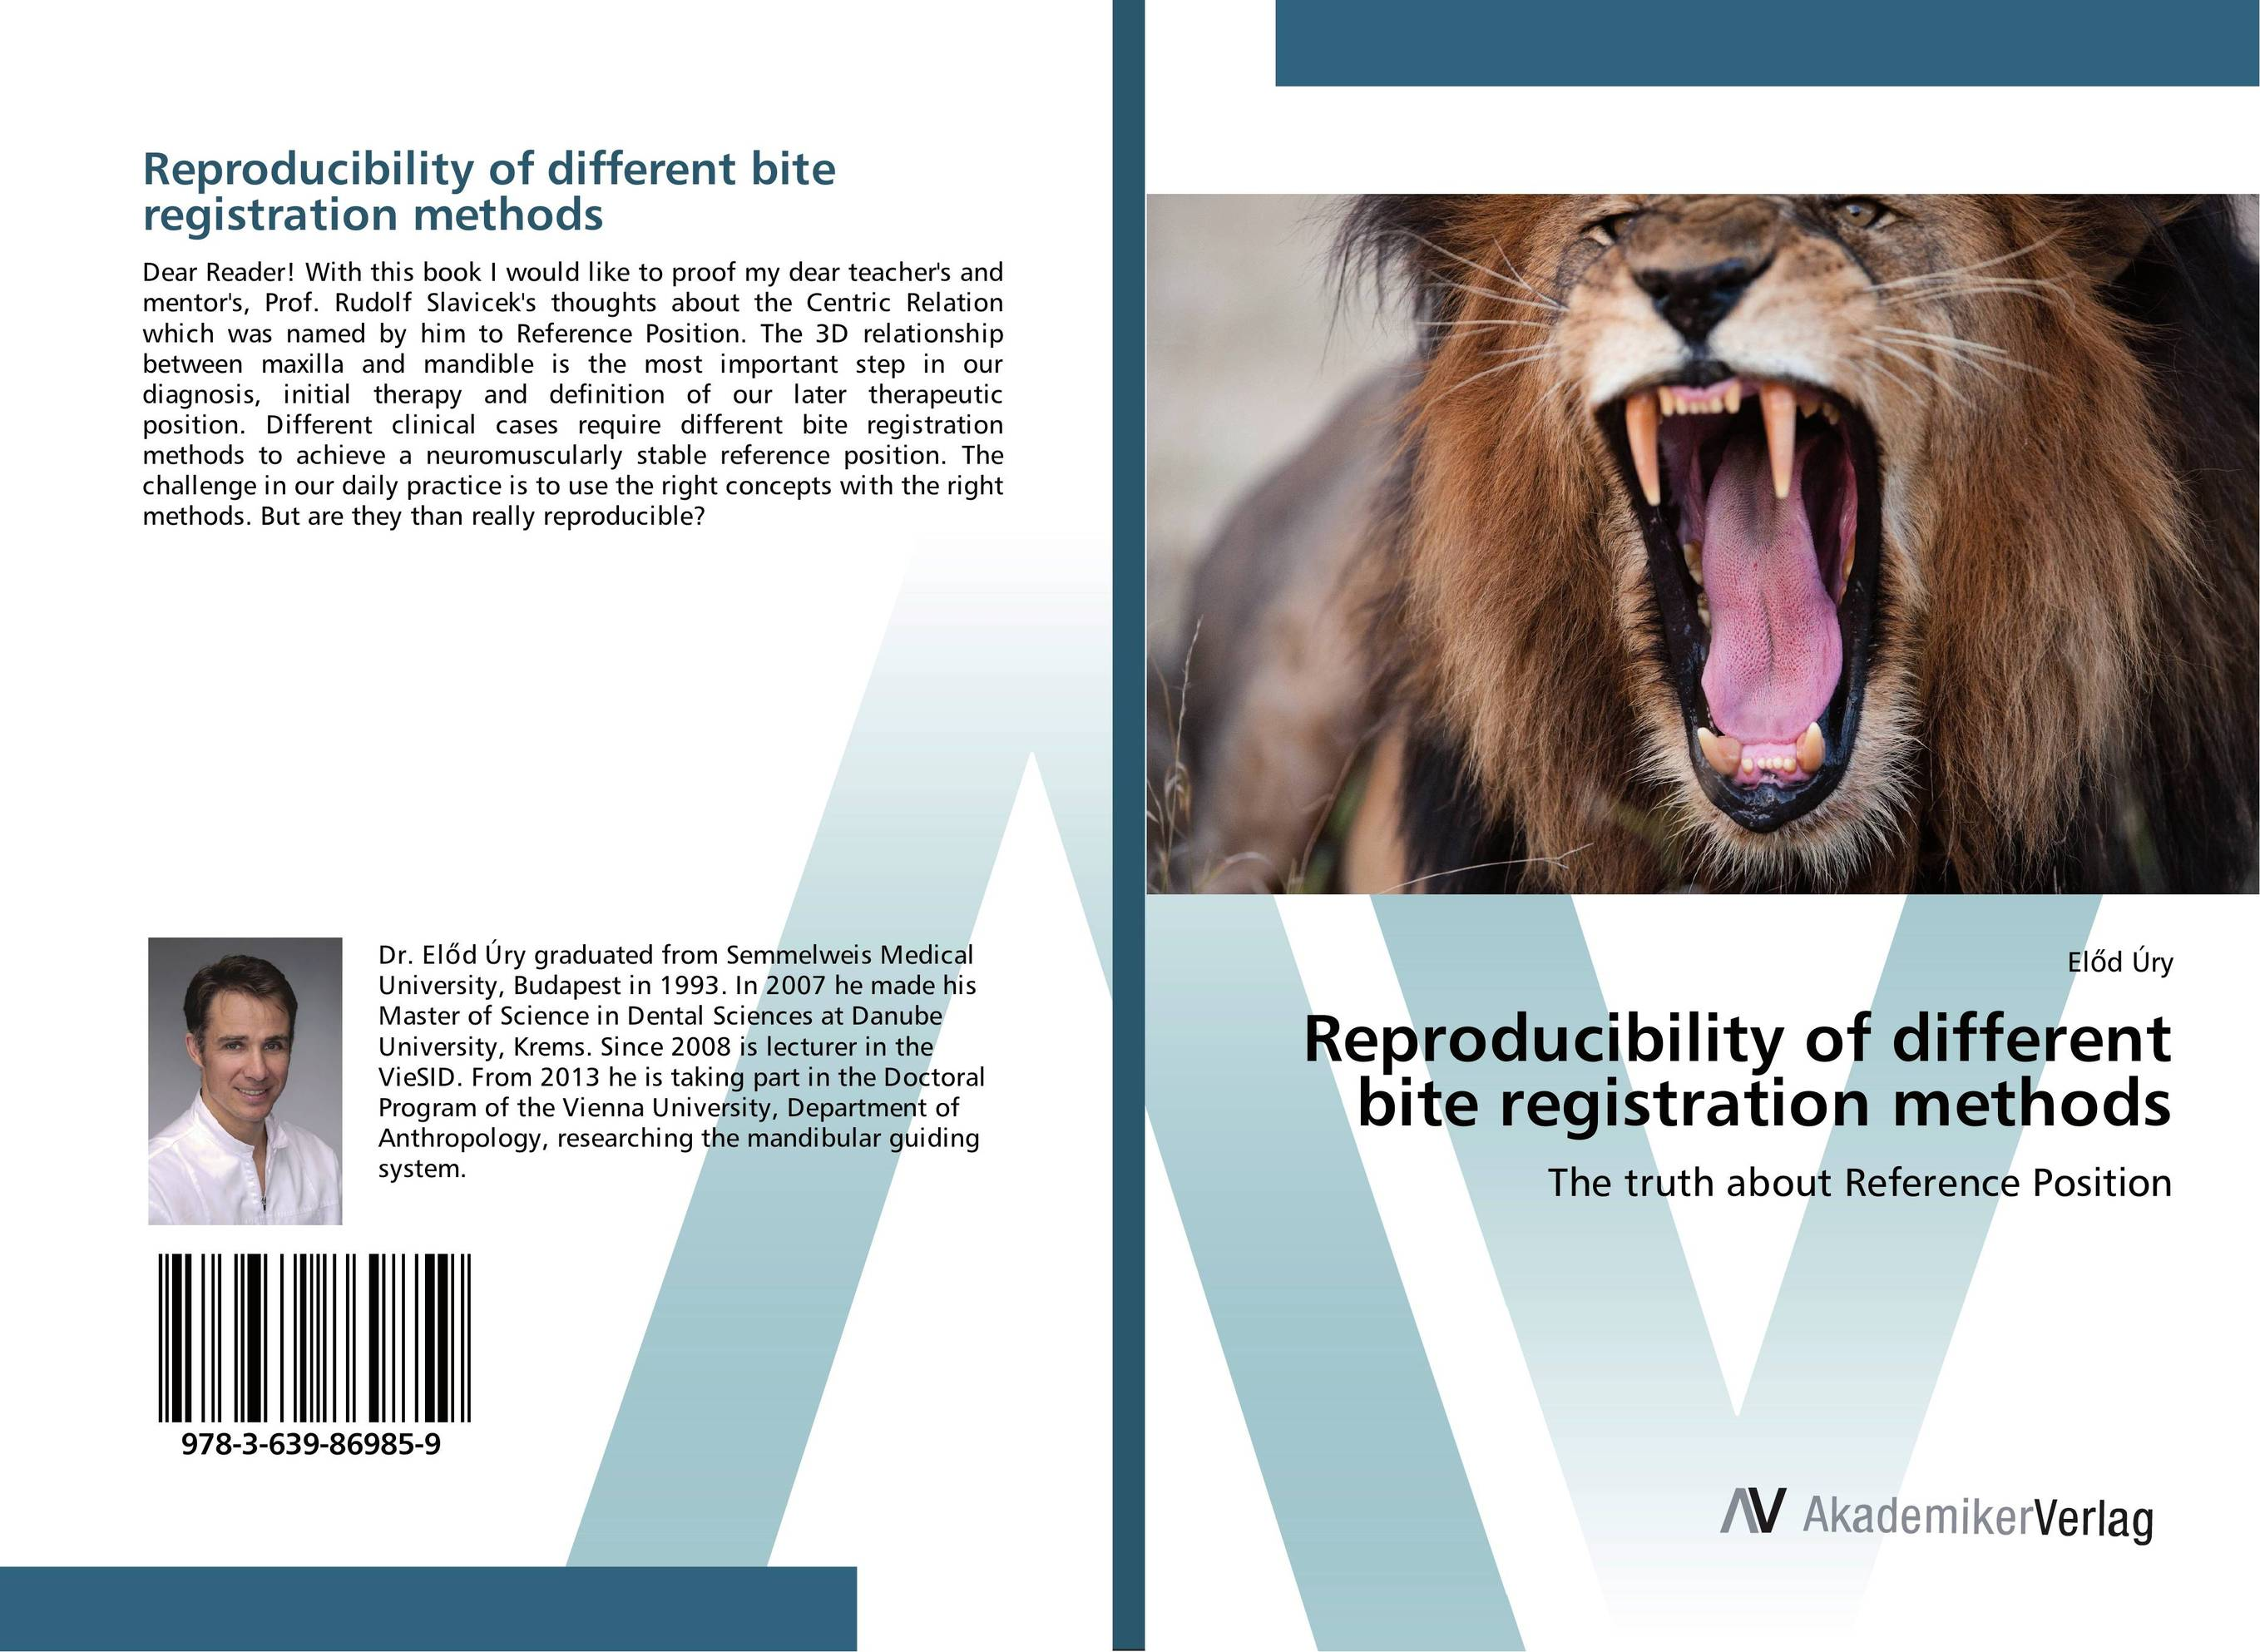 Reproducibility of different bite registration methods my own dear brother